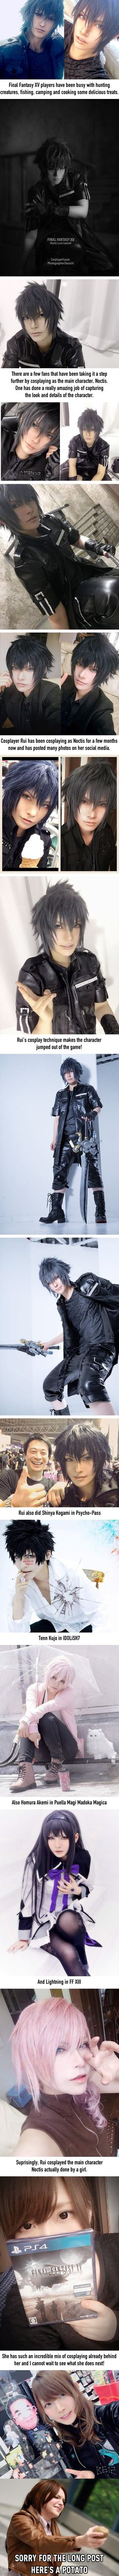 This Final Fantasy XV Cosplayer Rui Could Basically Be an In-Game Screenshot